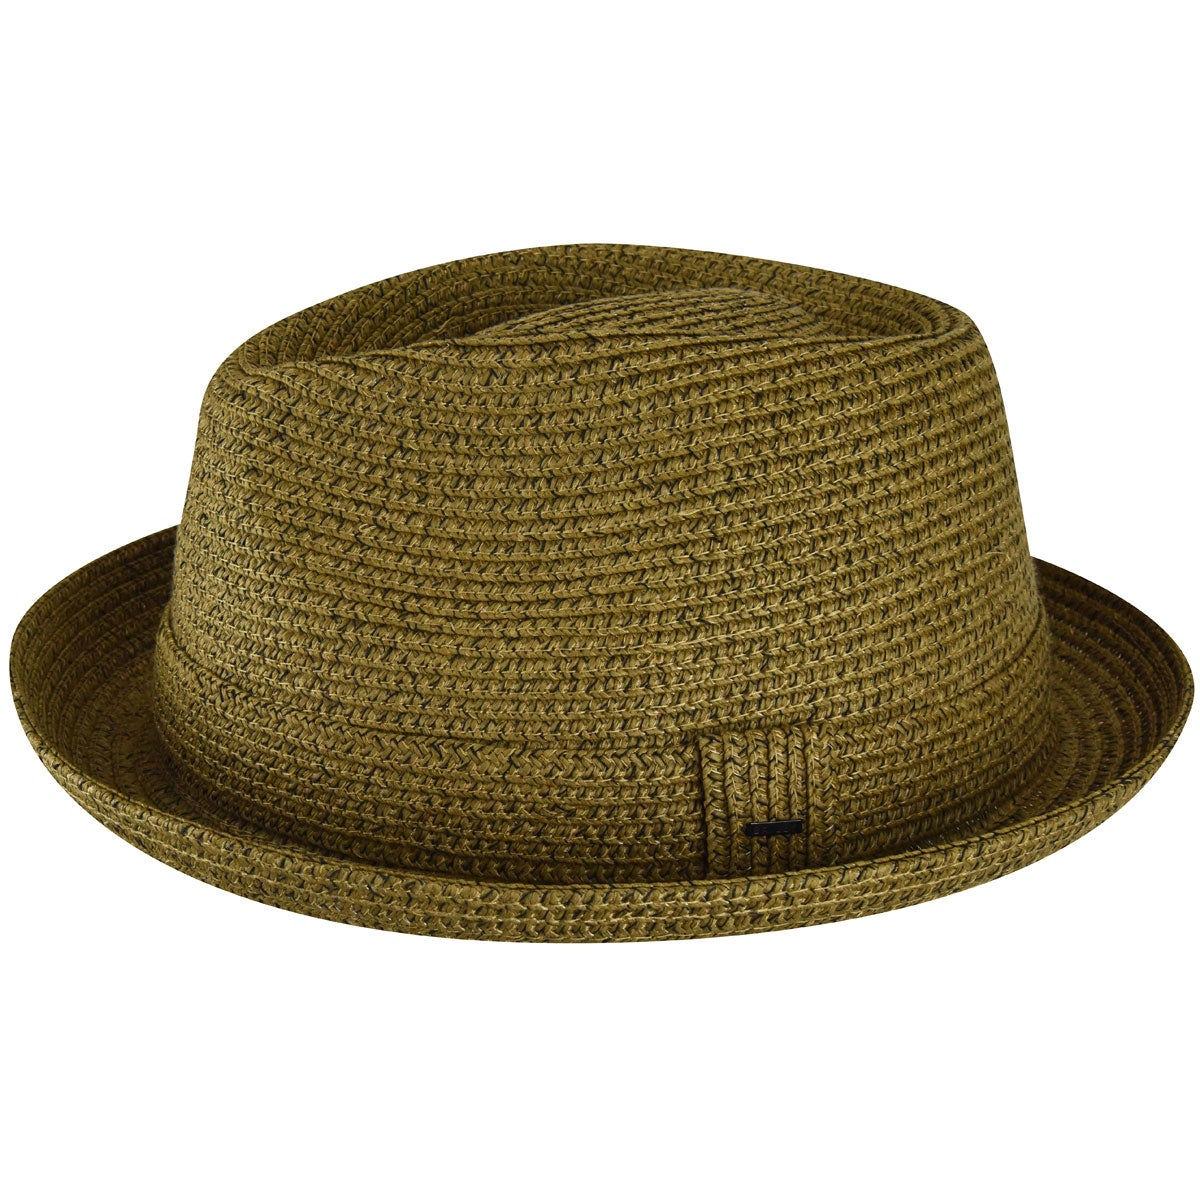 1960s – 70s Style Men's Hats Billy Braided Trilby $49.50 AT vintagedancer.com